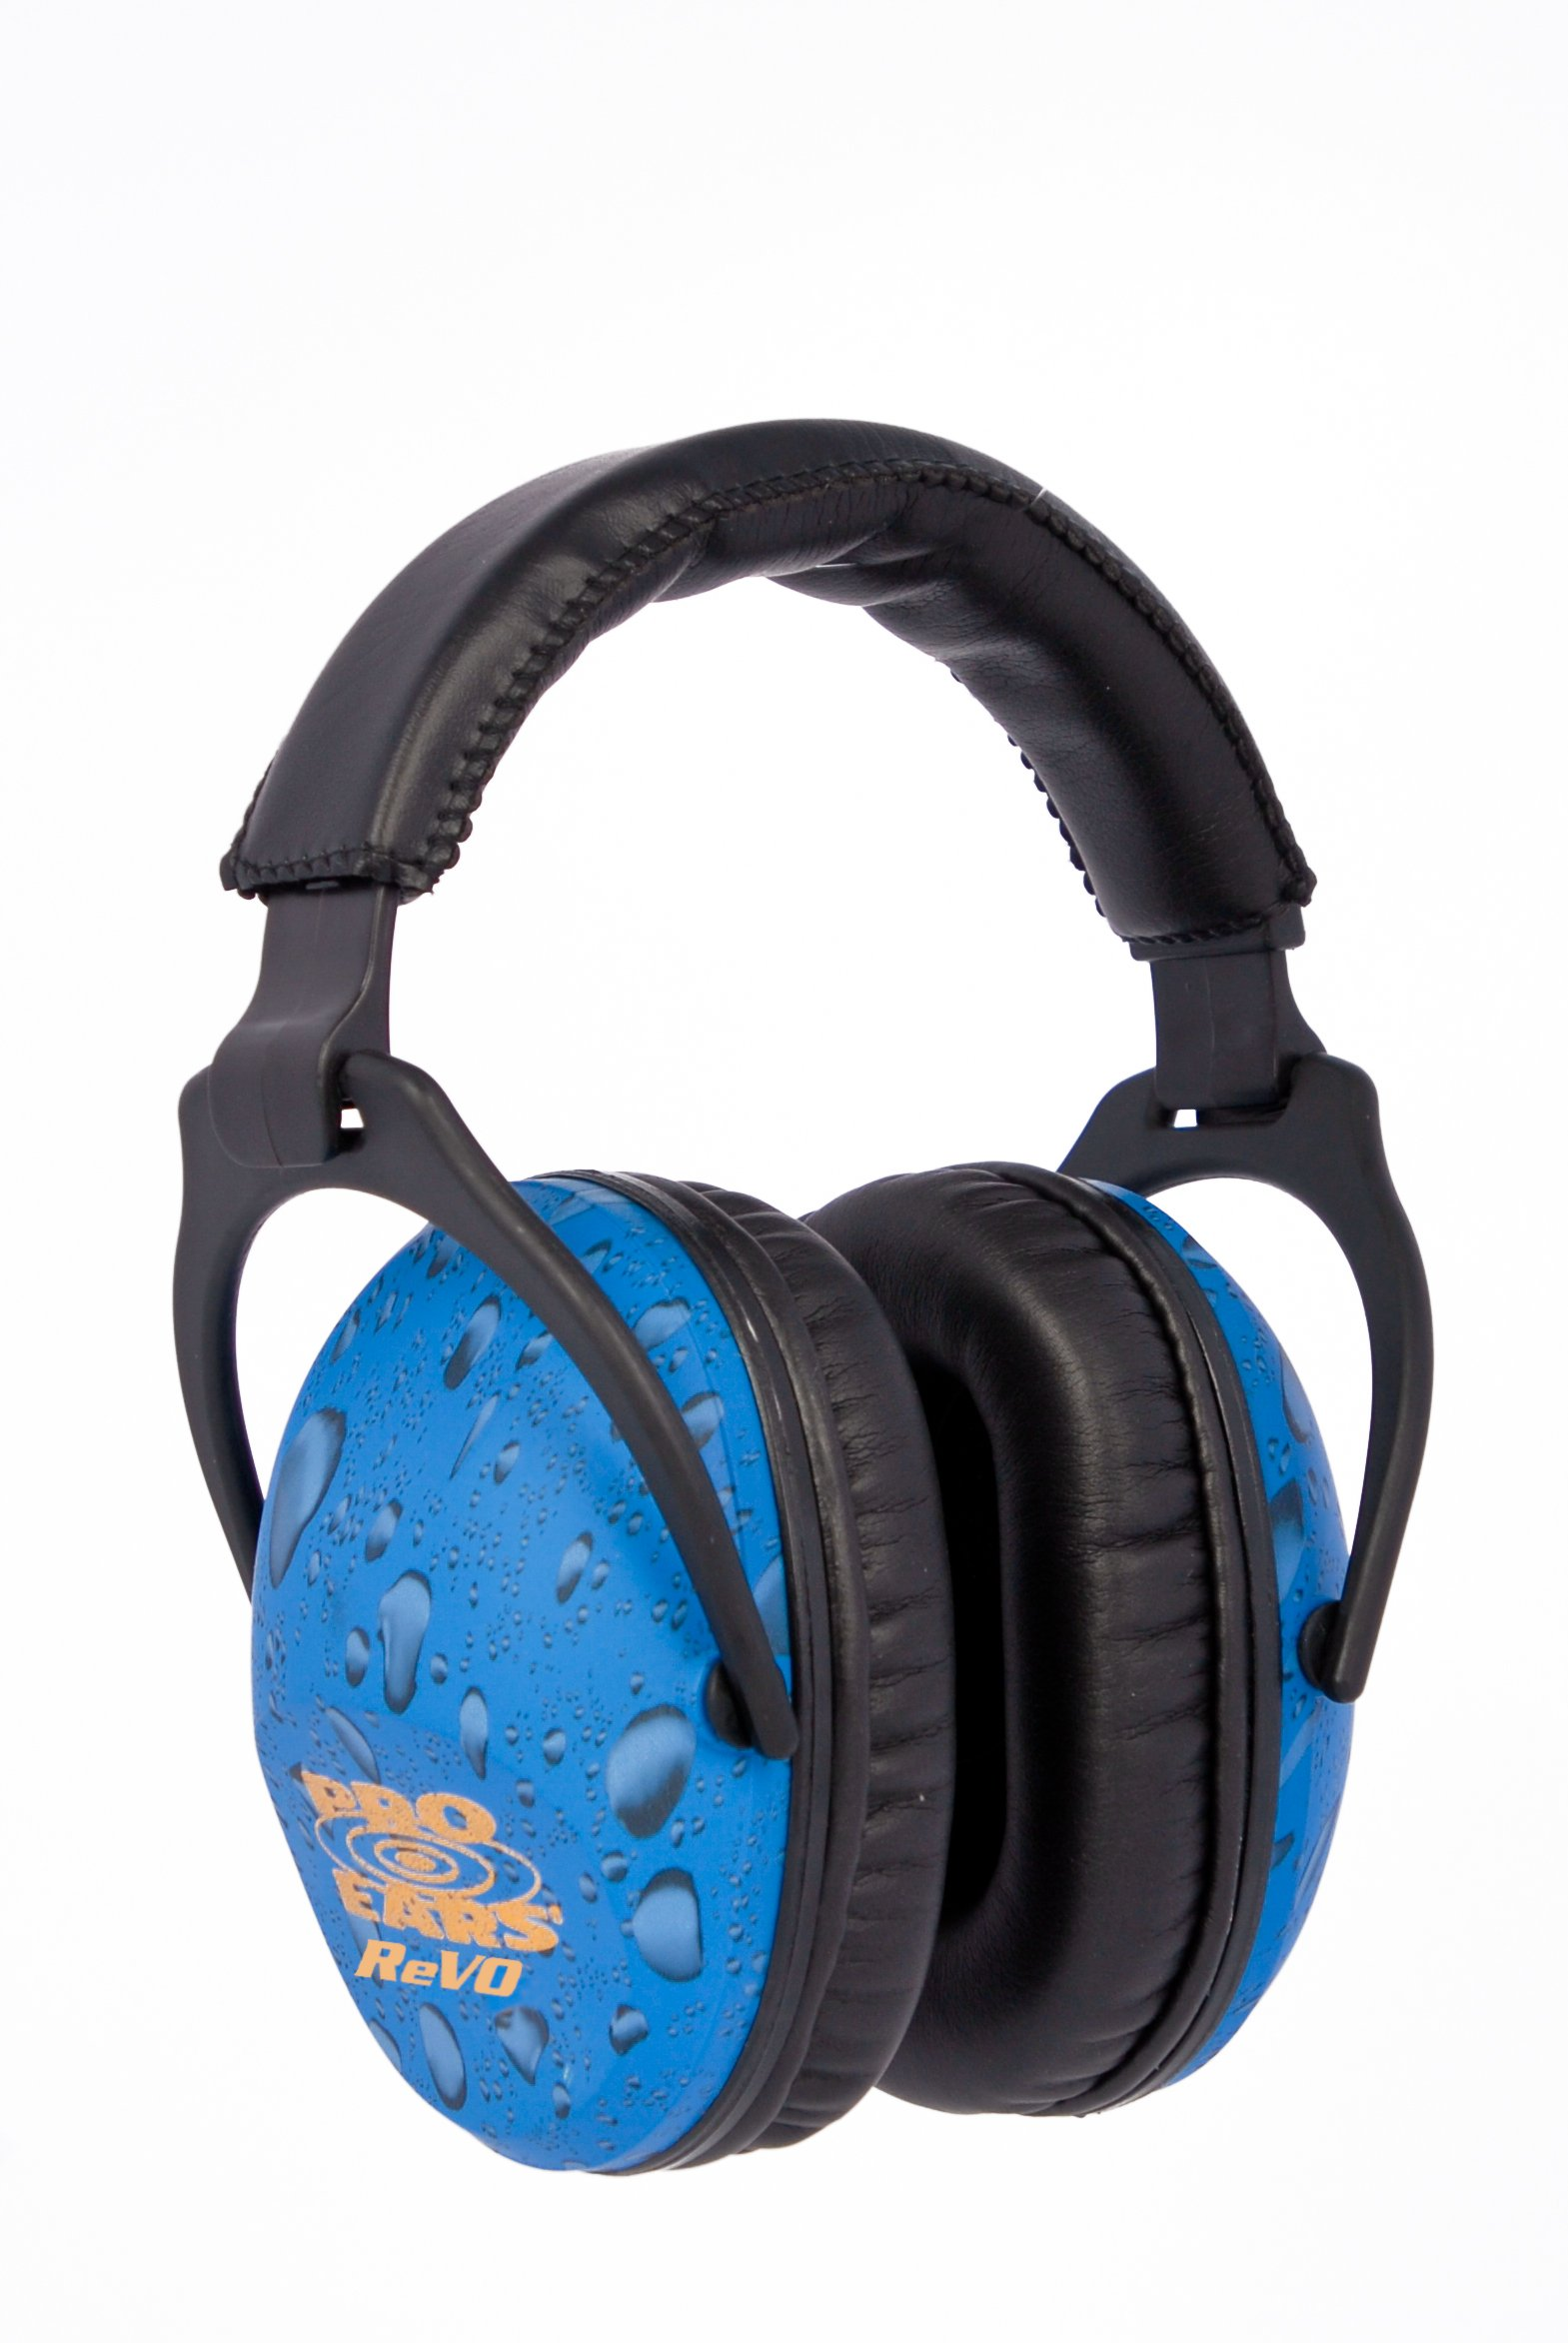 Pro Ears - ReVO - Hearing Protection - NRR 25 - Youth and Women Ear Muffs - Blue Rain by Pro Ears (Image #2)